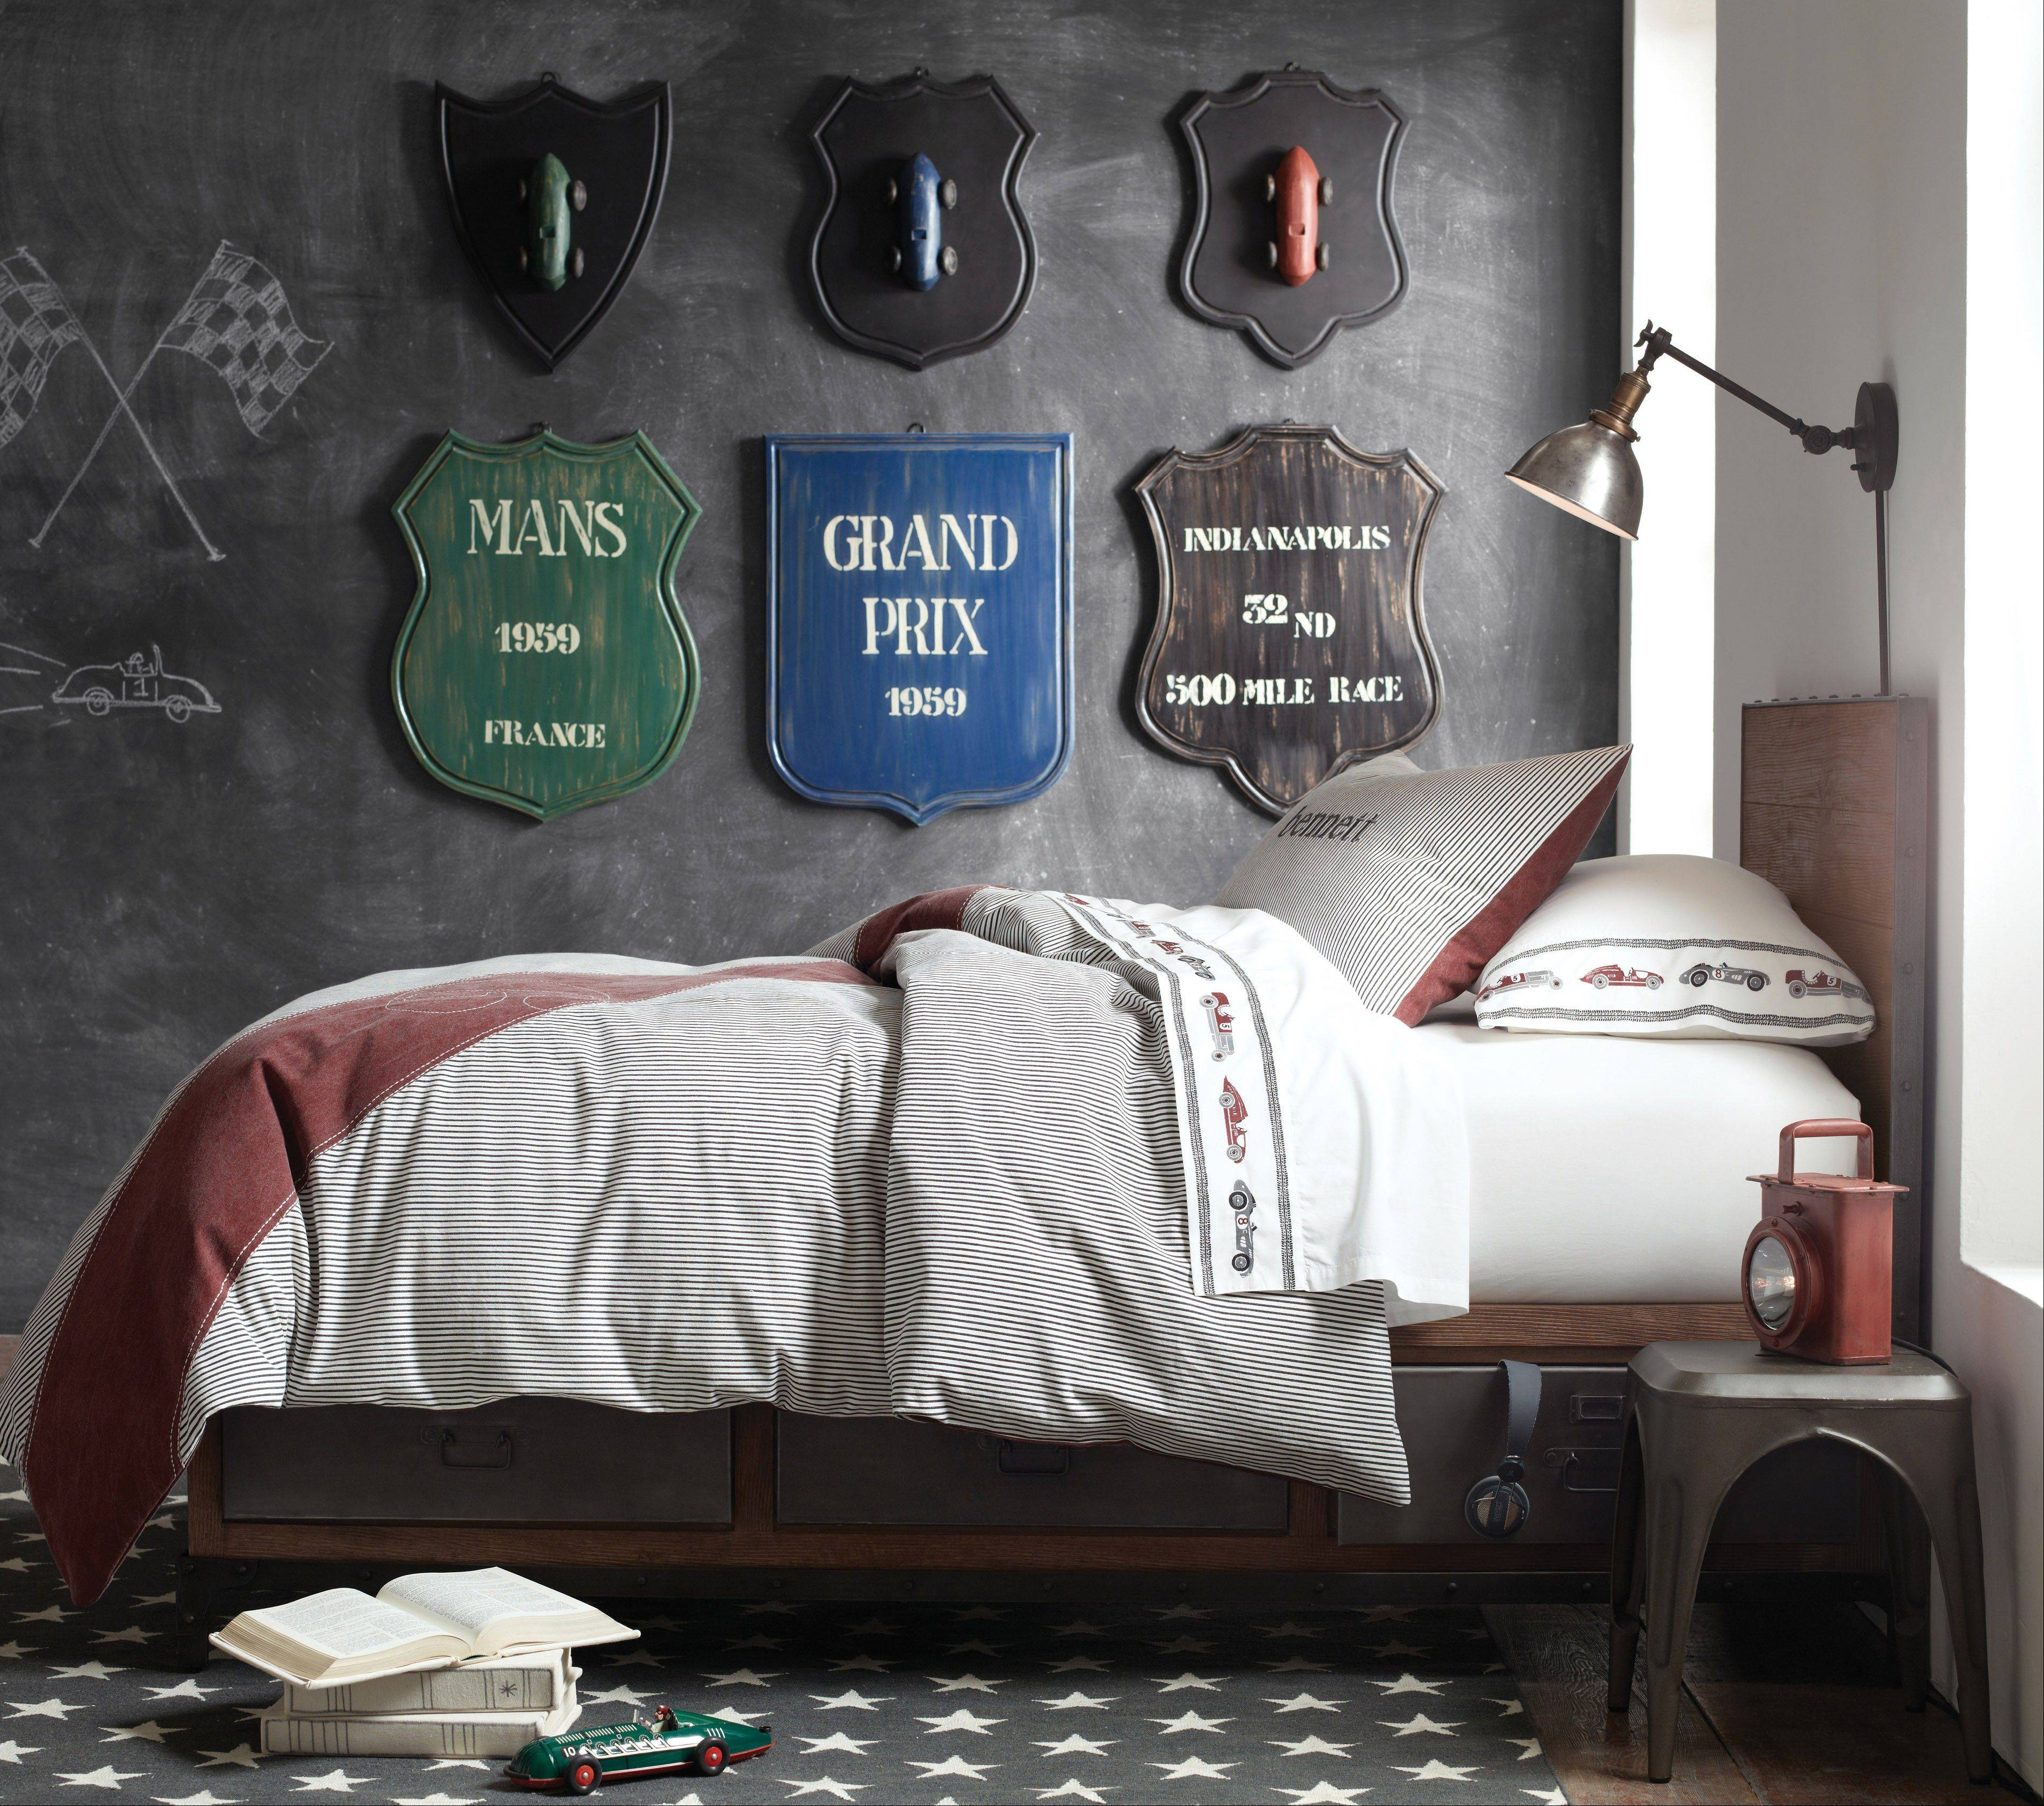 A young boy's love of cars works well to decorate his bedroom and looks chic and contemporary.